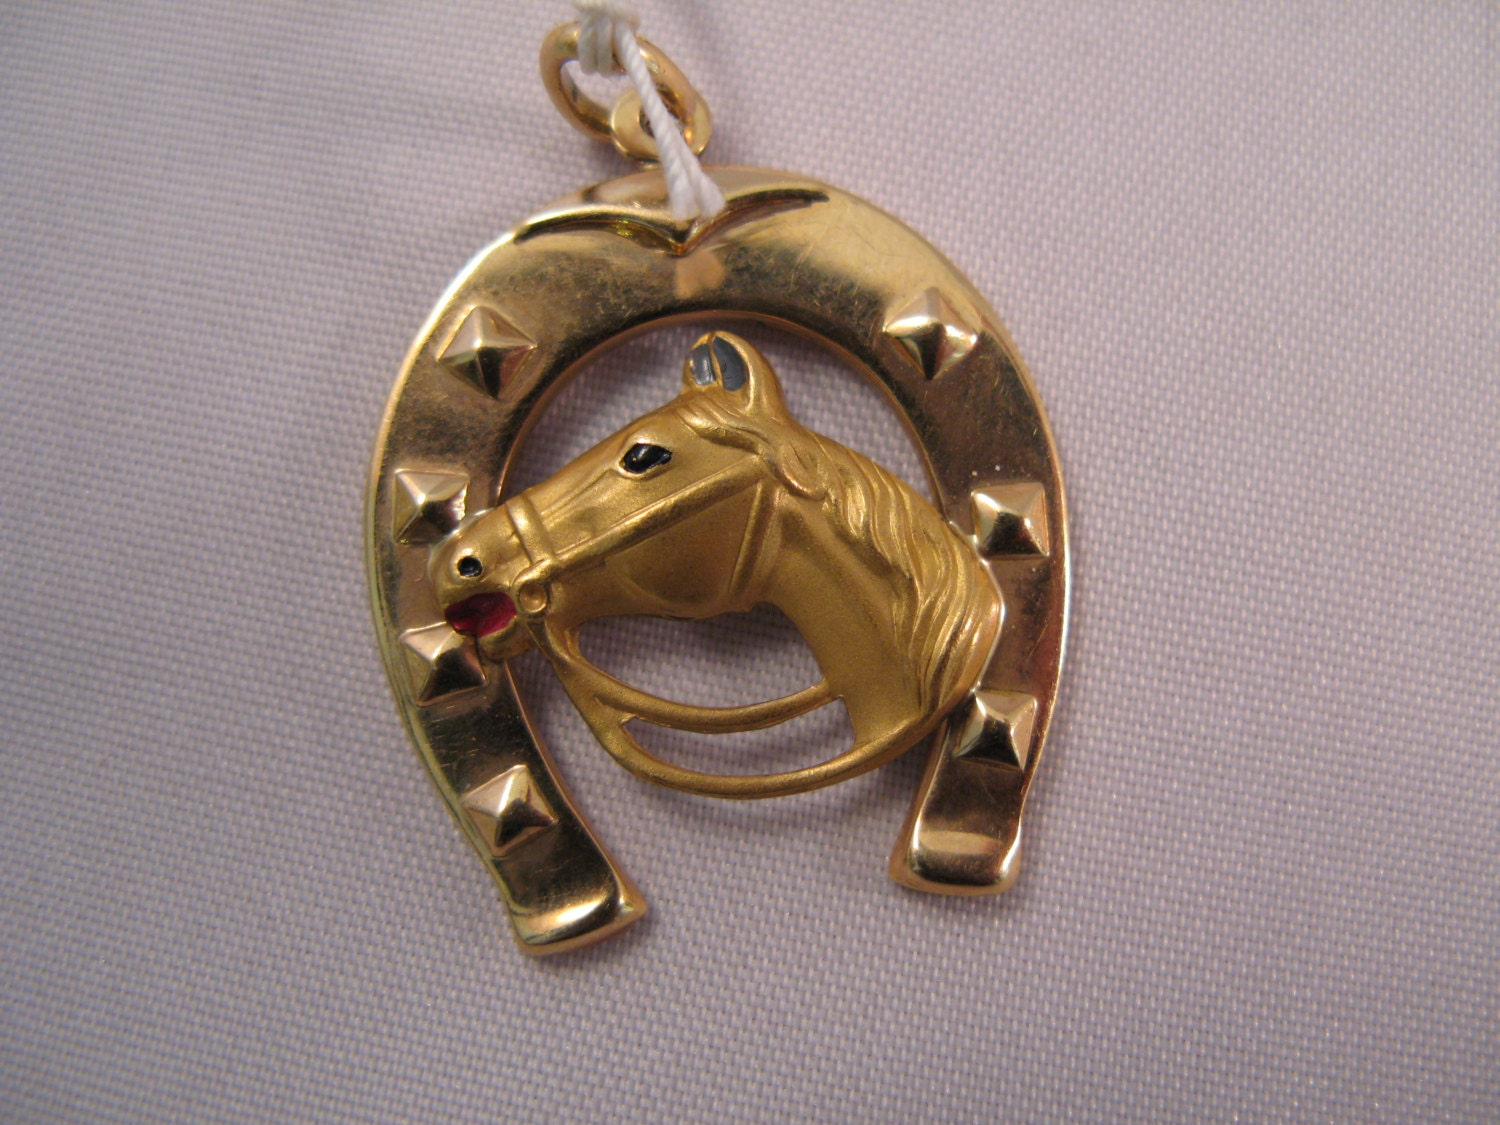 18k Yellow Gold Horseshoe And Horse Pendant Charm Free 9k